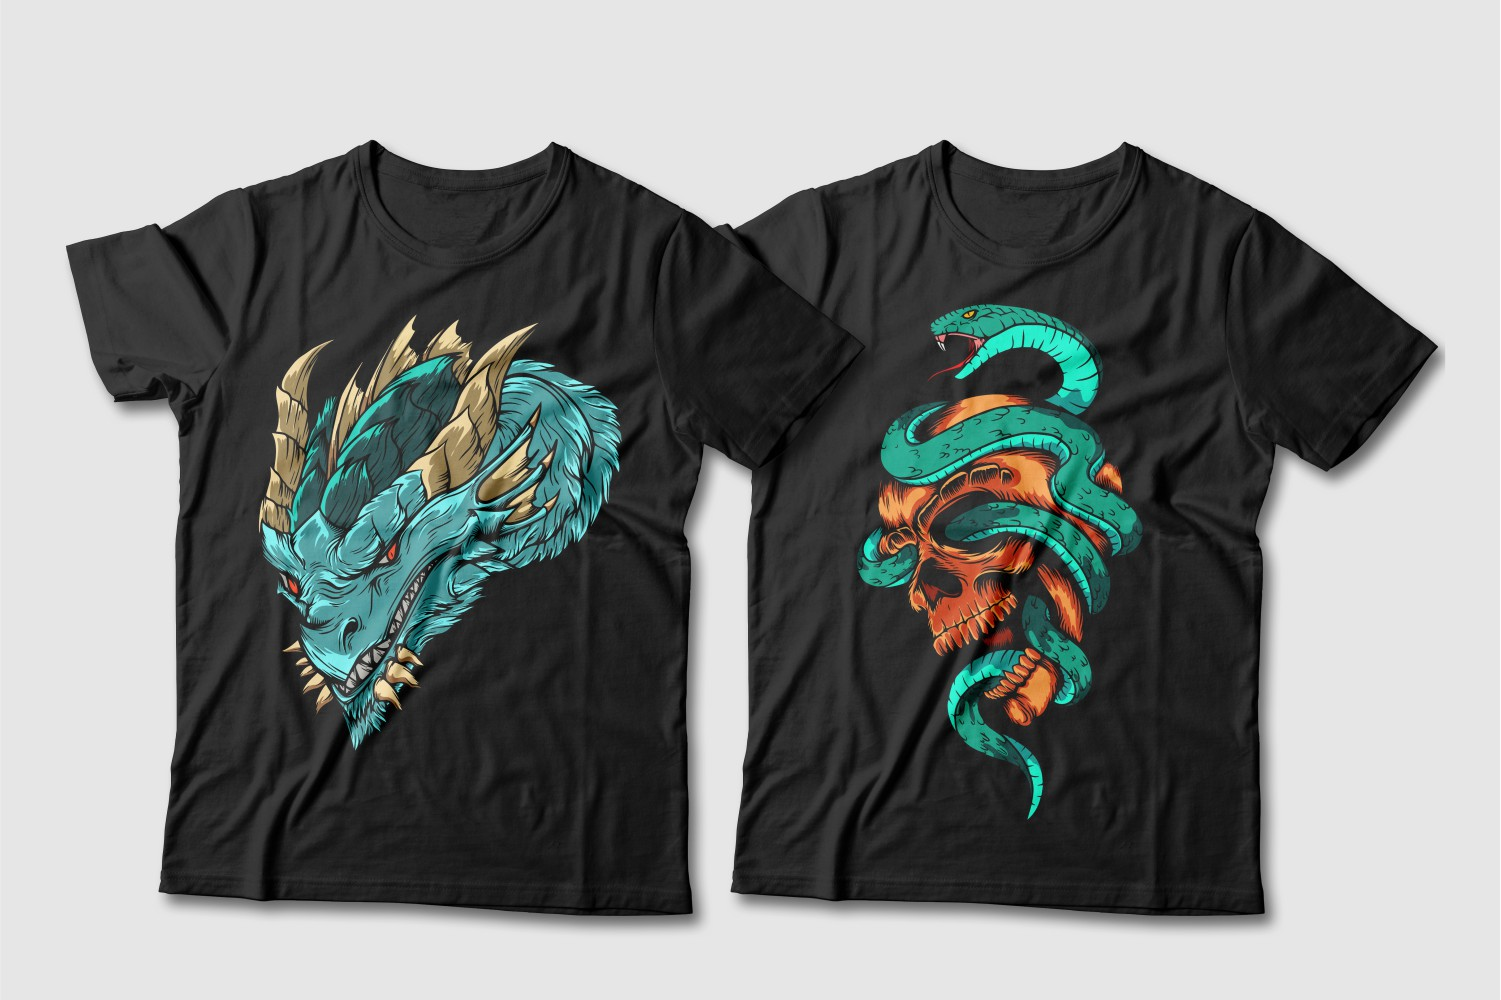 Black T-shirts featuring a sky dragon design with beige horns and a turquoise cobra around a brown skull.